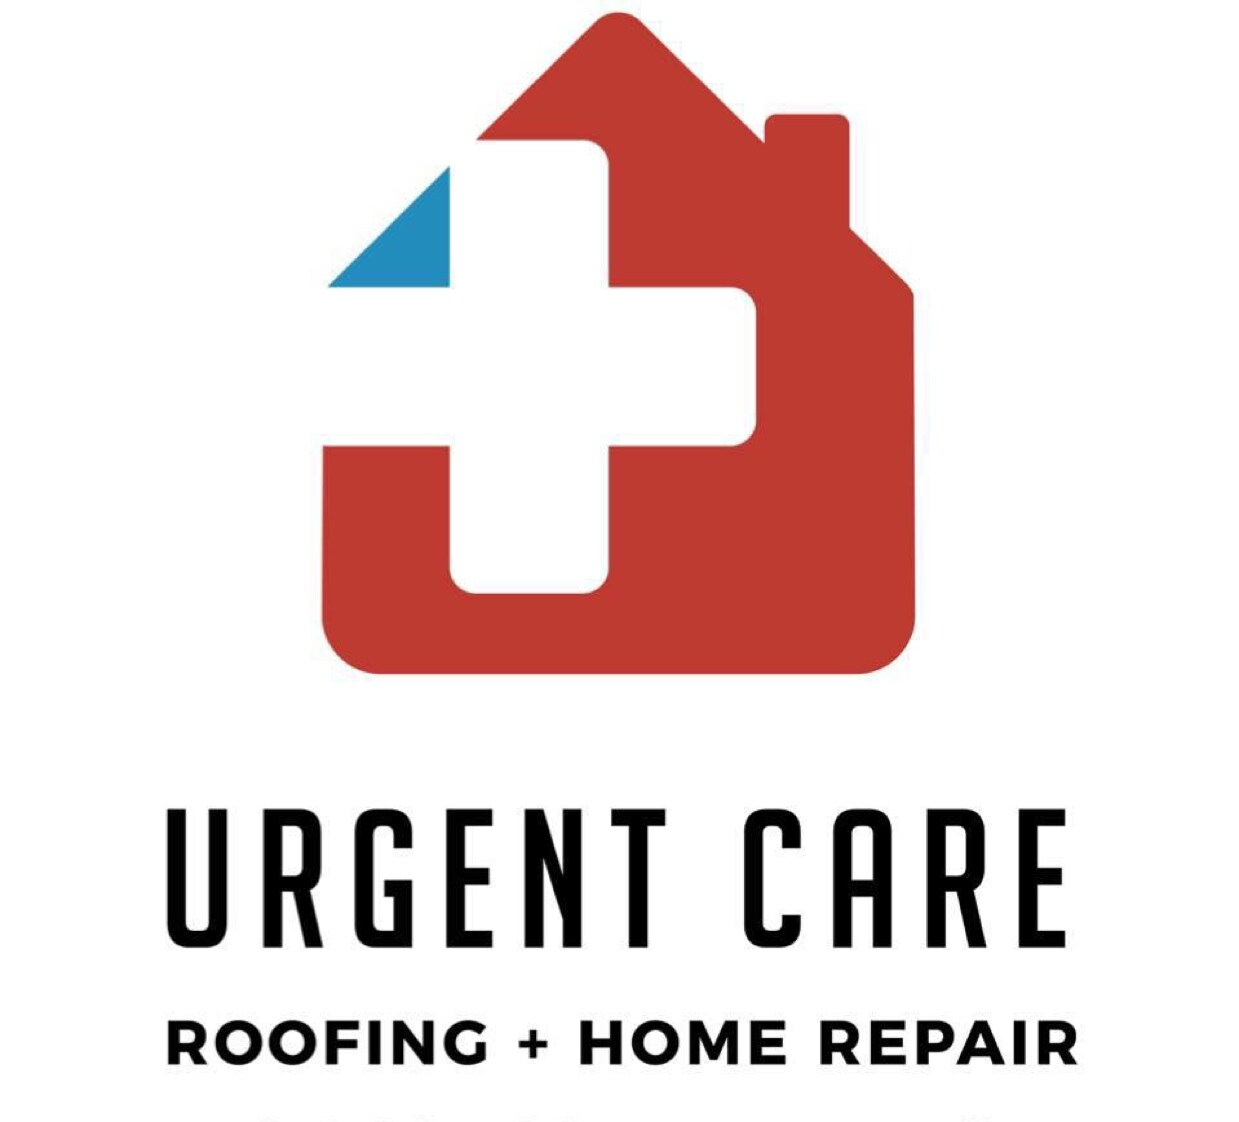 Urgent Care Roofing and Home Repair